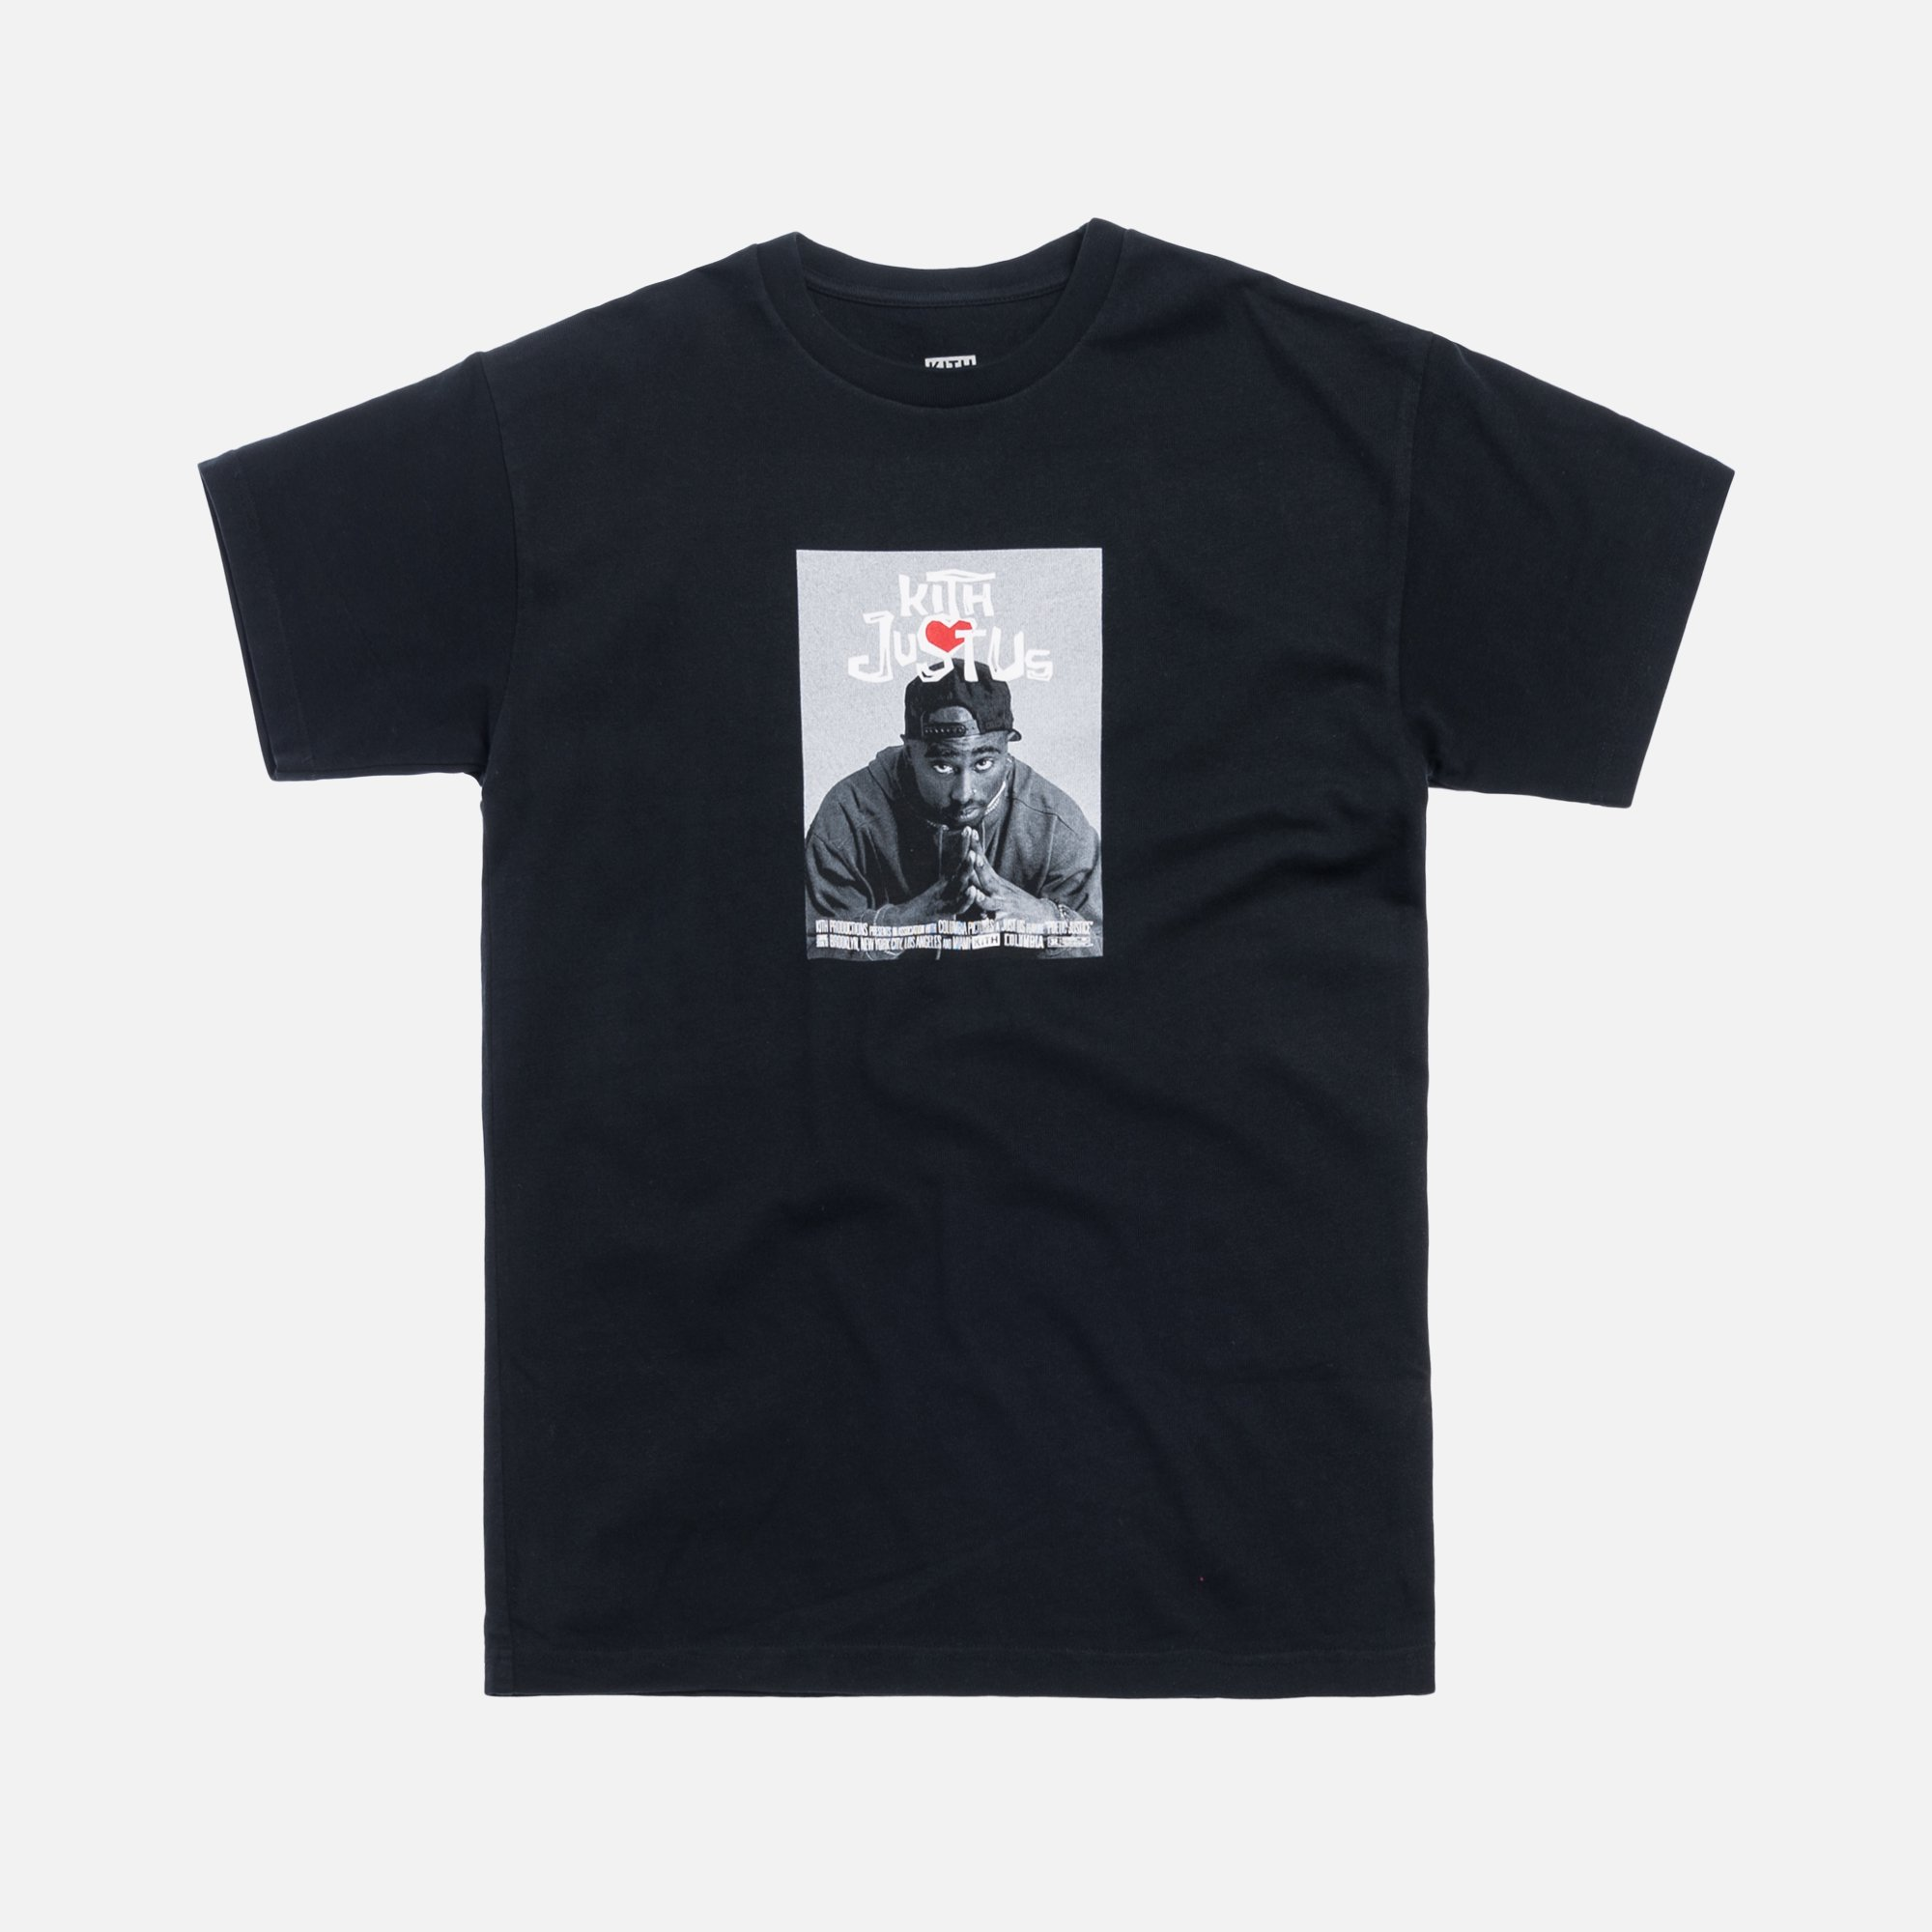 3887dfa4 ... is currently sold out on KITH.com, but sites like StockX are currently  offering them on the resell market. Get a look at all three featured items  below: